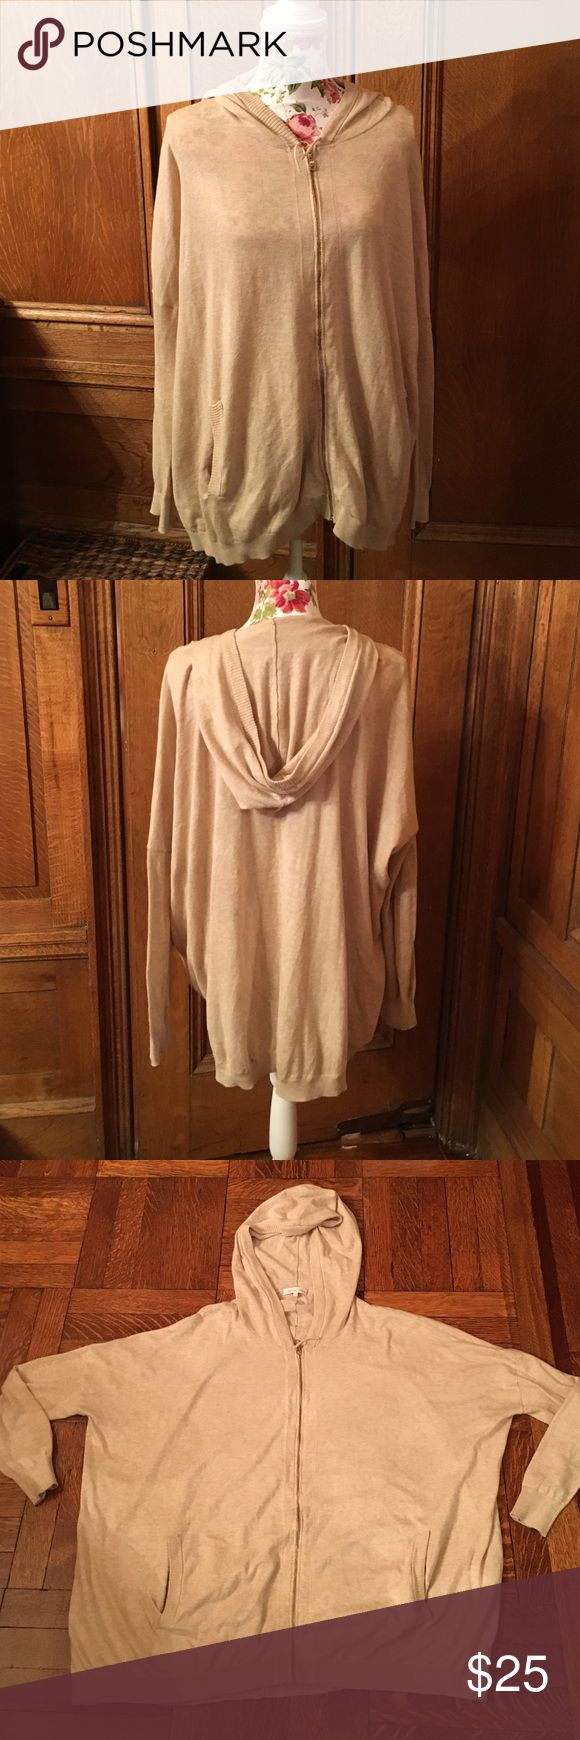 """Cotton oversized zip up Hoodie sweater Tan with gold zipper. Size m/l but fits oversized. Pit to pit 30"""" shoulder to hem 26"""" slide pockets on each side. Great for layering. minnie rose Sweaters Cardigans"""